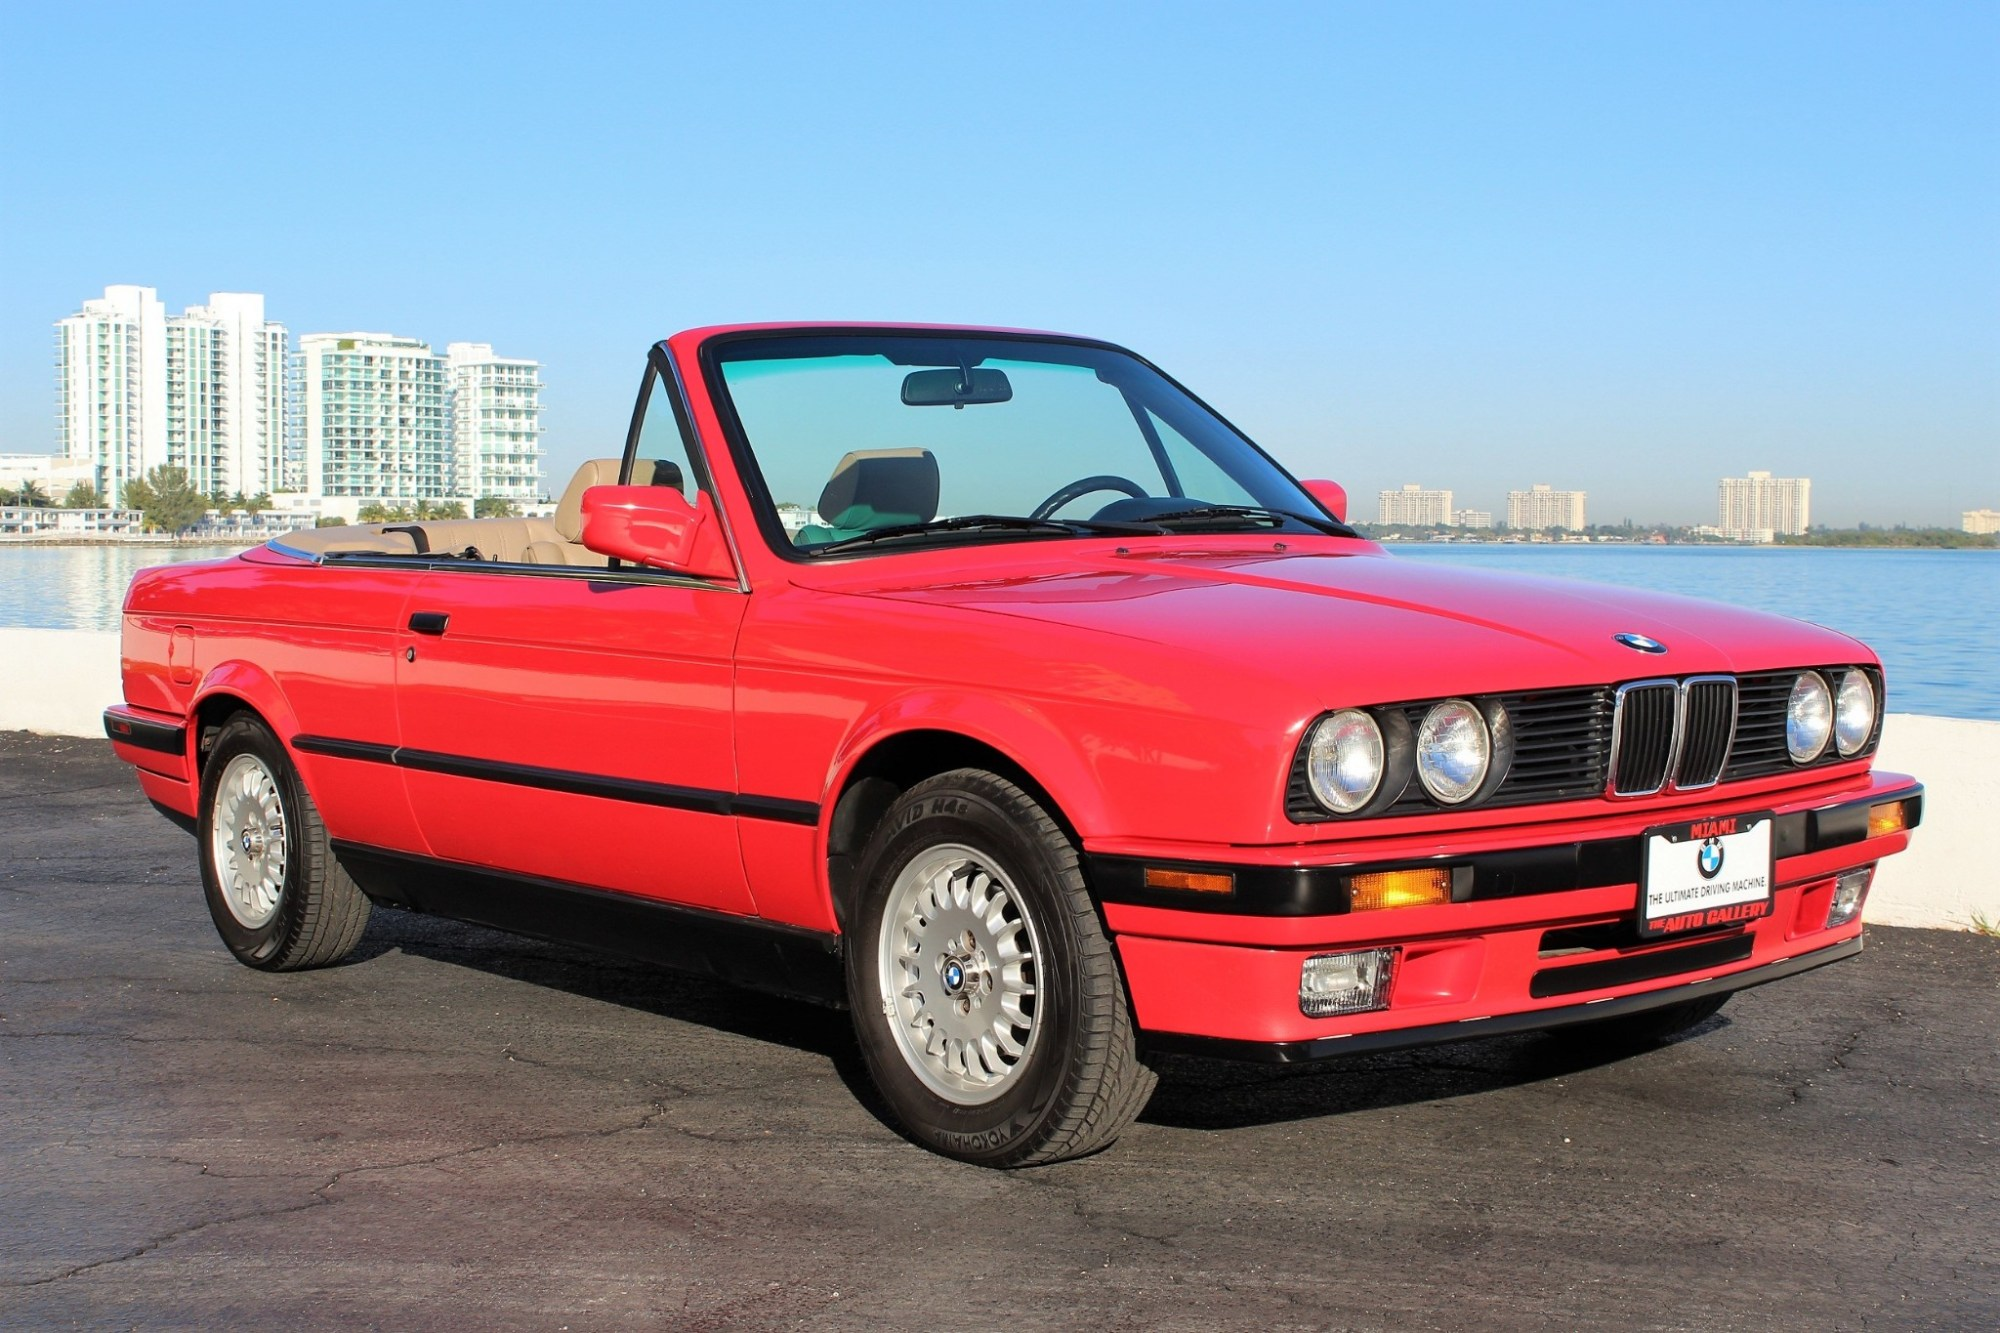 hight resolution of 1991 bmw 318i convertible 5 speed for sale on bat auctions closed on november 29 2017 lot 7 100 bring a trailer